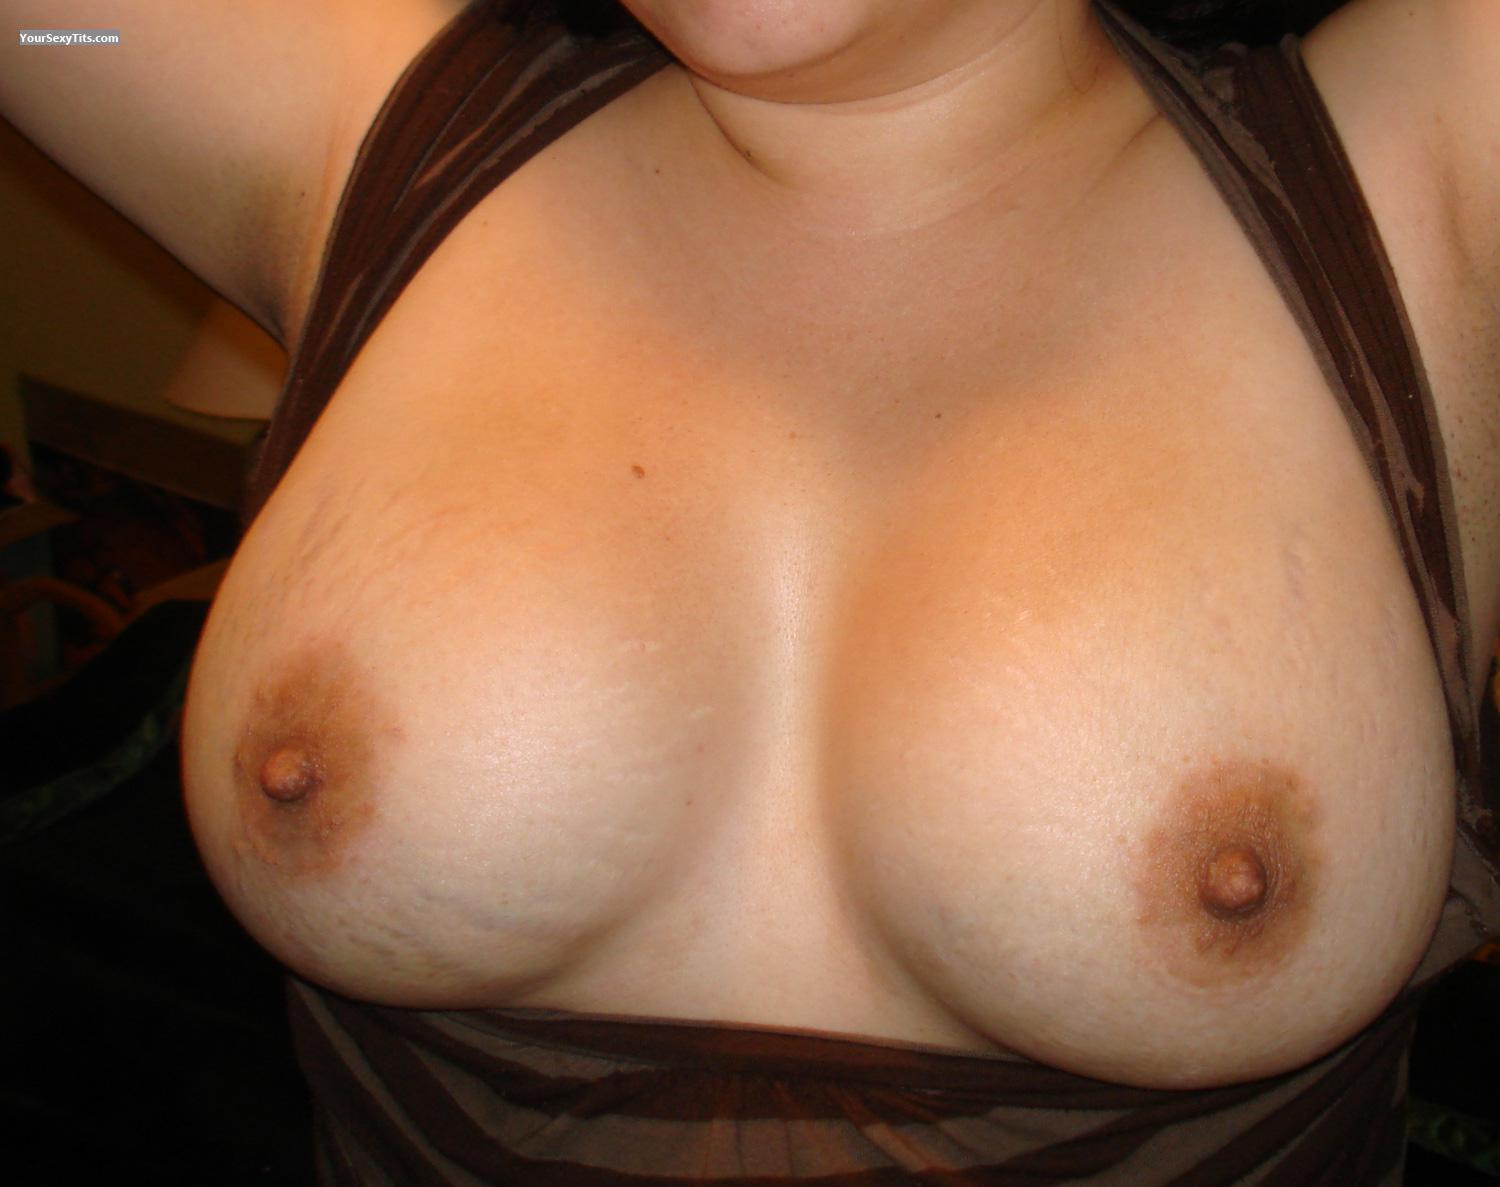 Medium Tits Of My Wife Perfect D's